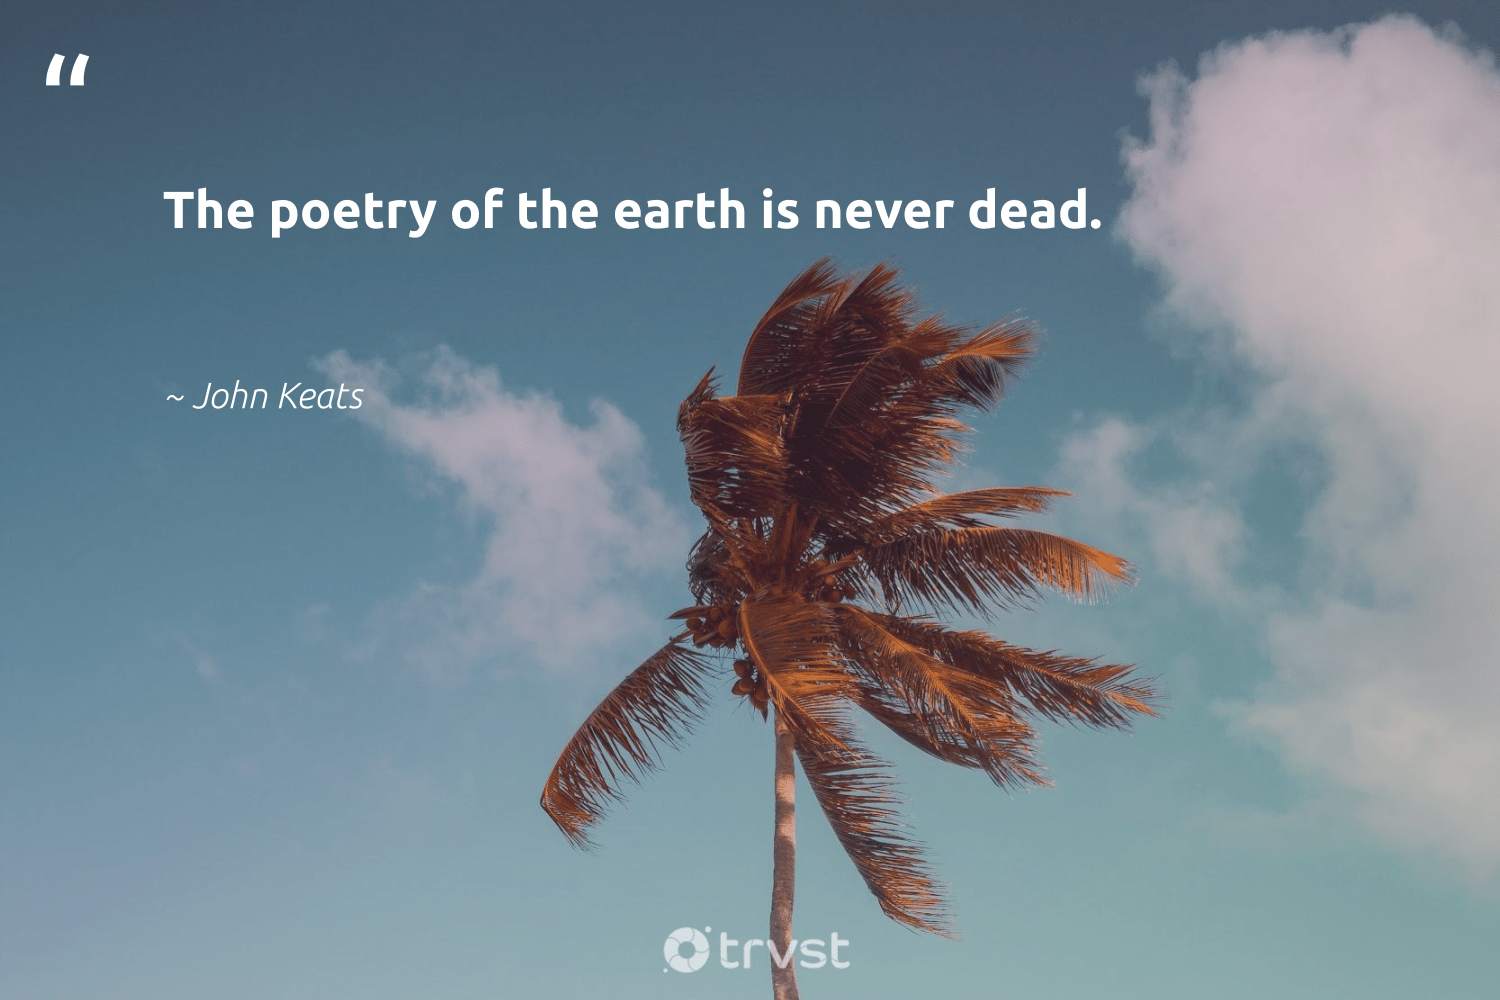 """""""The poetry of the earth is never dead.""""  - John Keats #trvst #quotes #environment #earth #environmentallyfriendly #wildlifeplanet #thinkgreen #nature #noplanetb #volunteer #dotherightthing #conservation"""